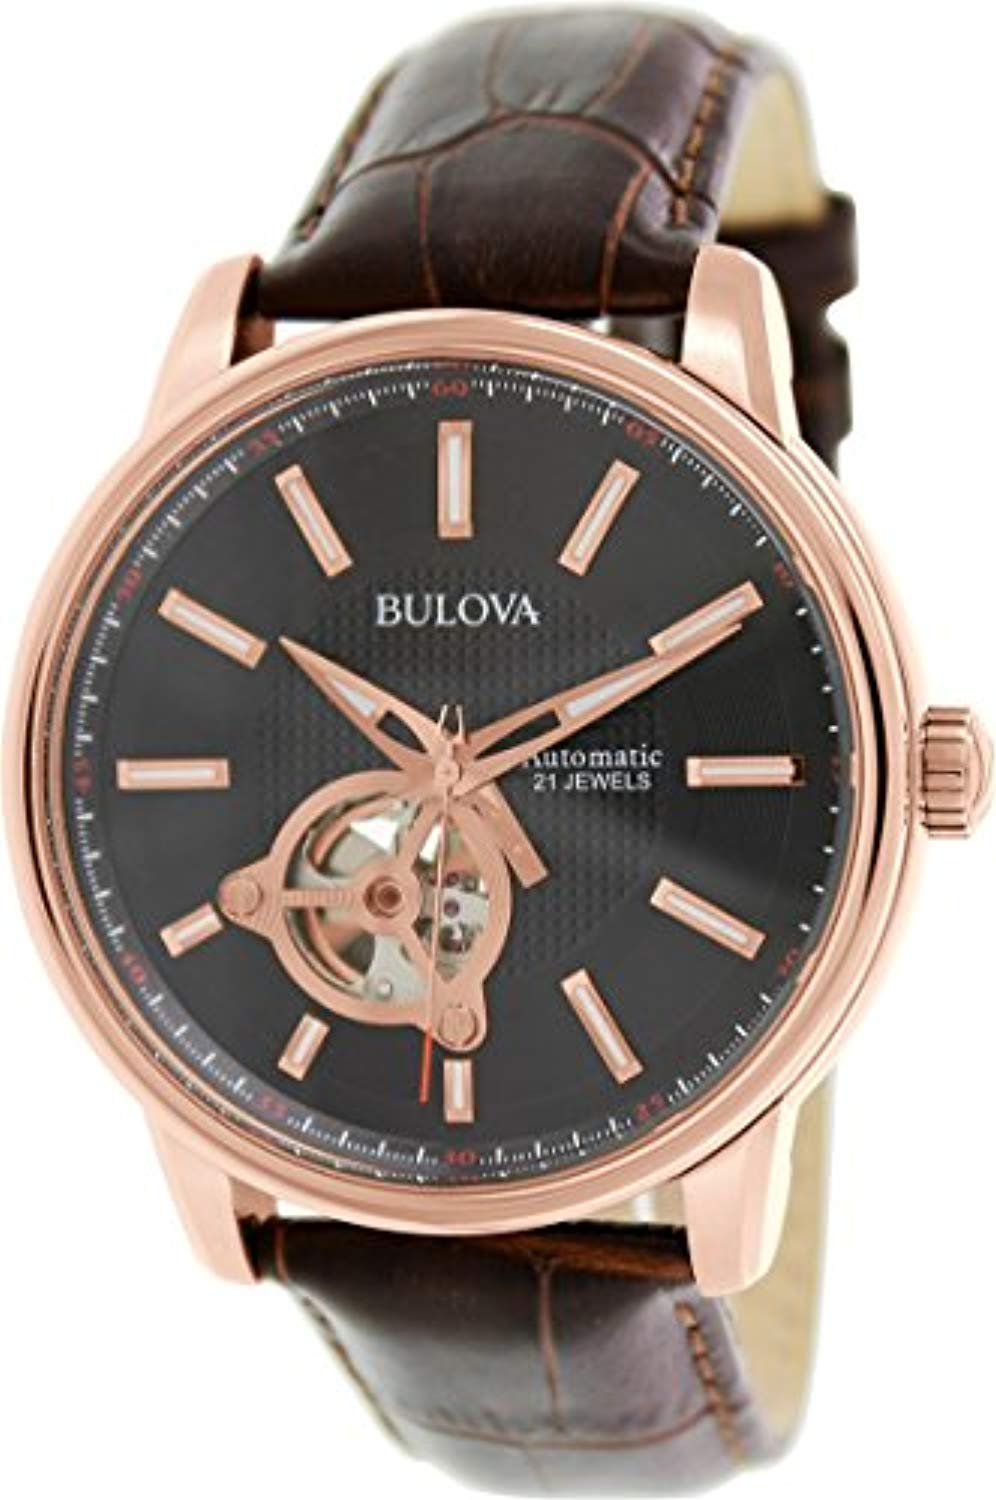 Bulova Men's Classic 45mm Automatic Leather Strap Watch